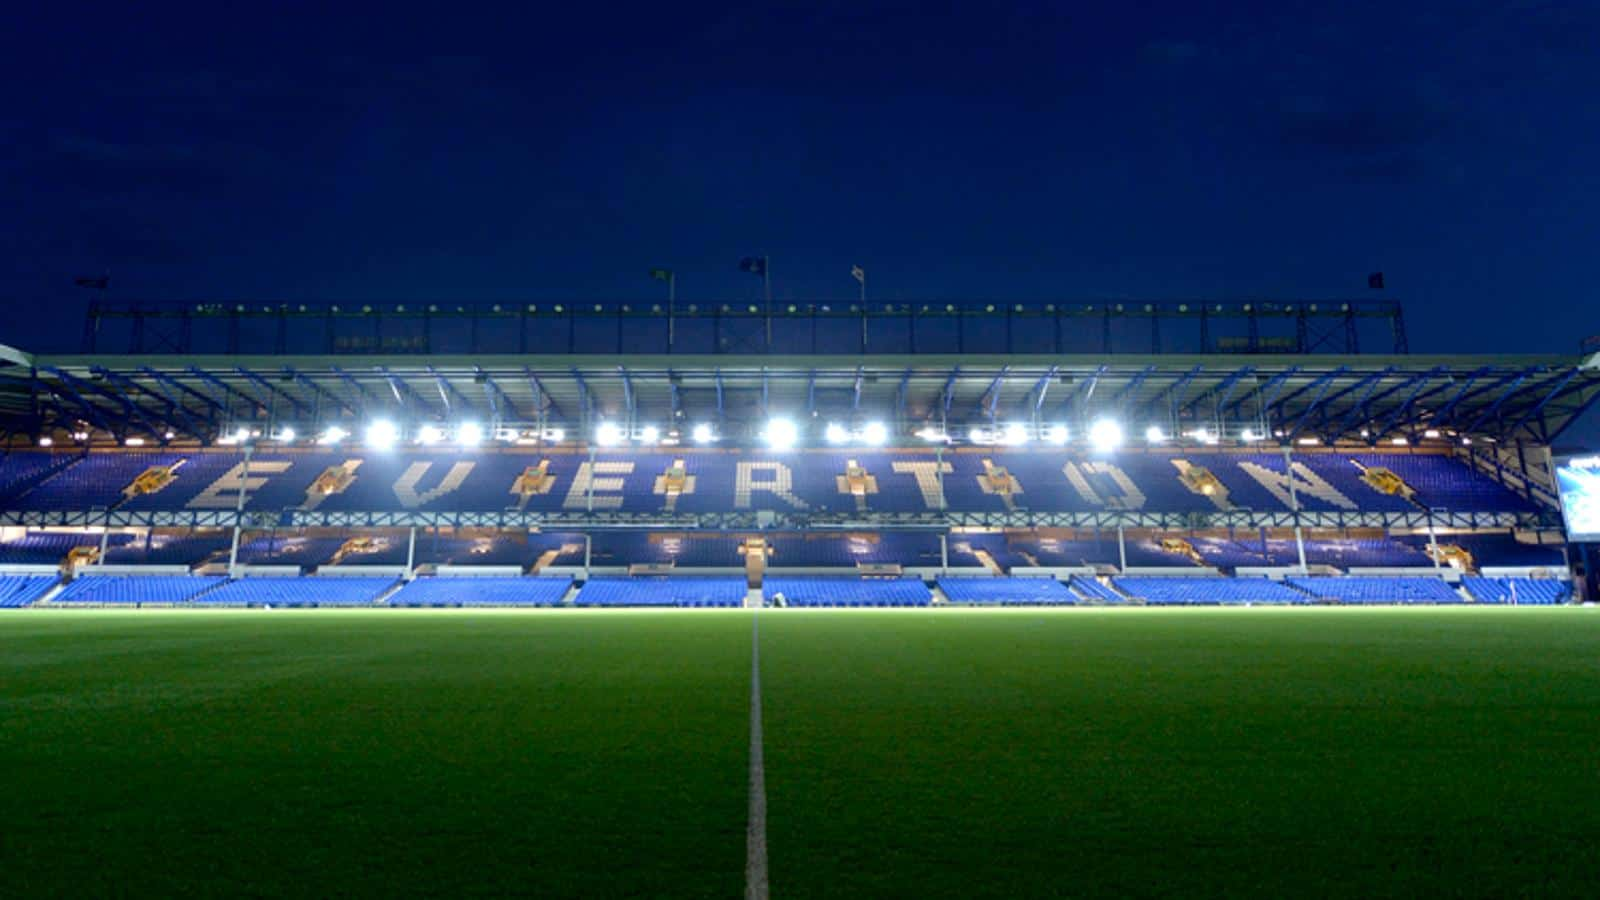 Richarlison is back but still no Dominic Calvert-Lewin as Everton welcome Watford to Goodison Park